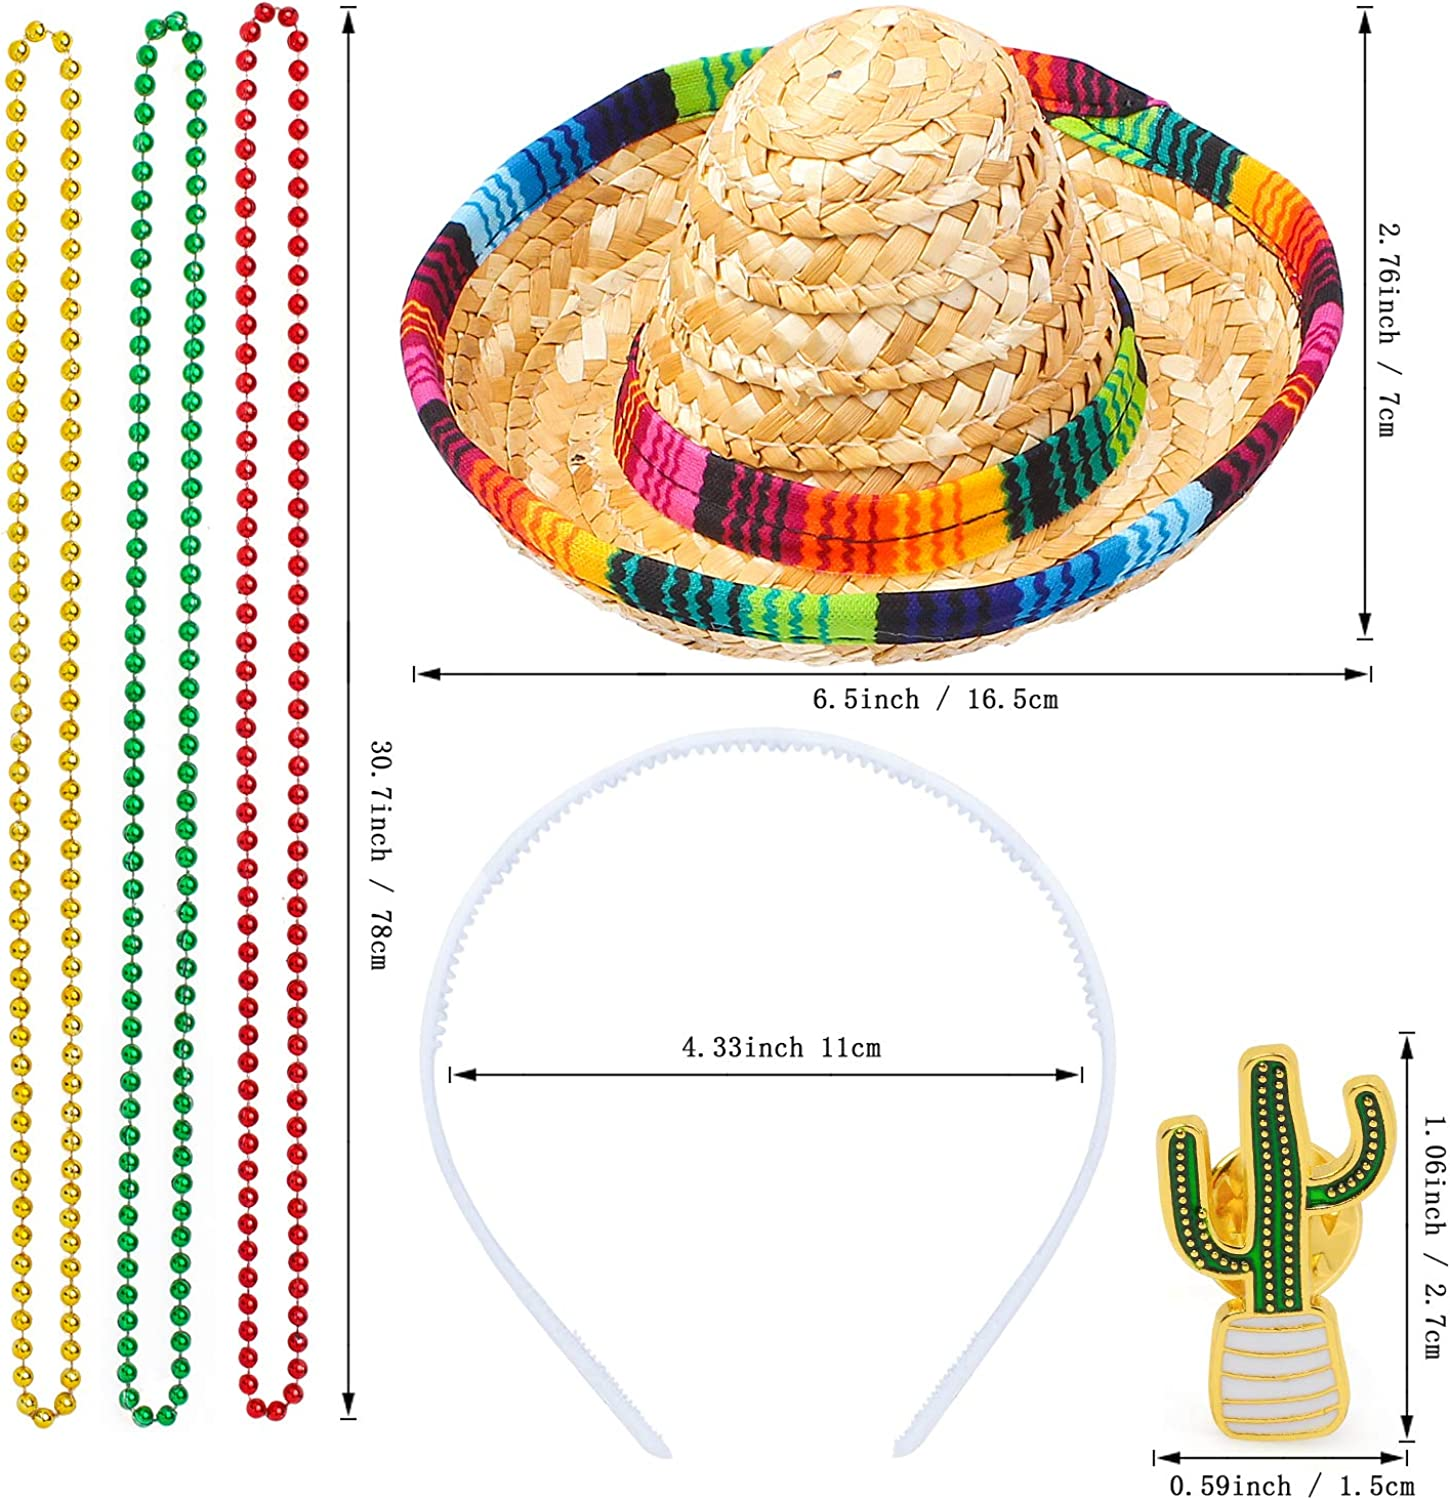 Beelittle Cinco De Mayo Fiesta Fabric and Straw Sombrero Headbands Bean Chain Necklace Mexican Festivals Birthday Party Favors Supplies Decorations